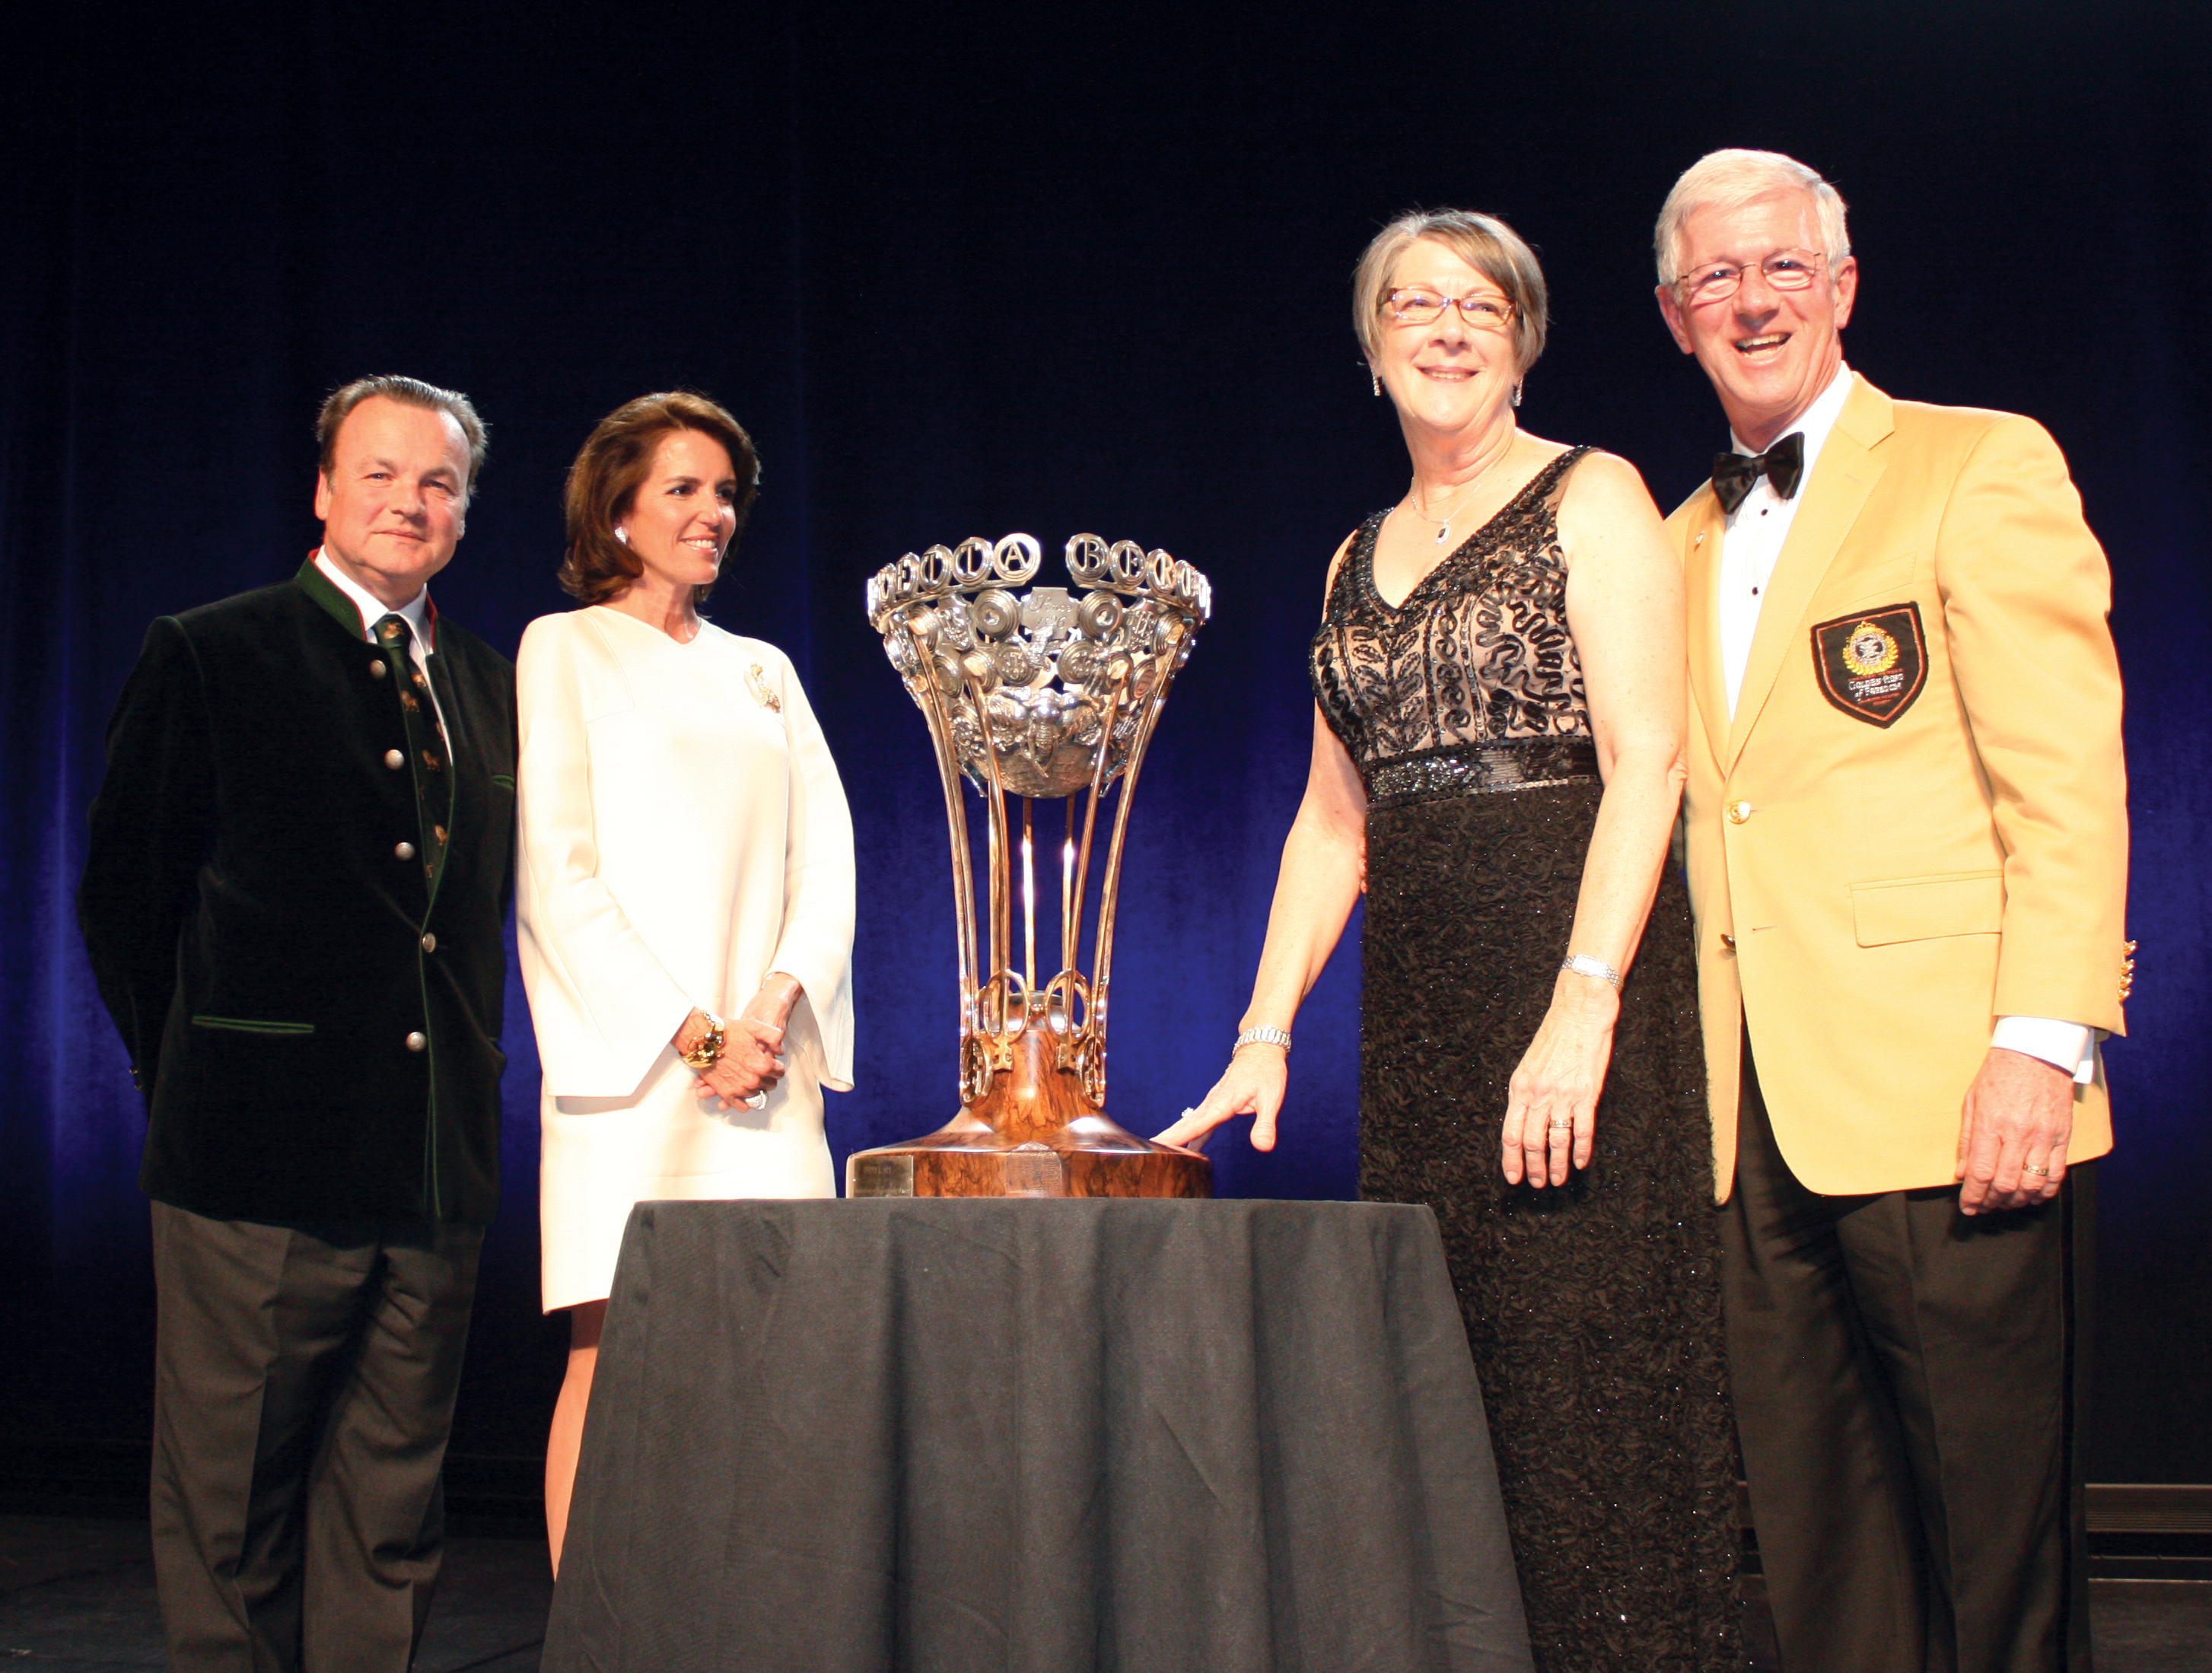 Larry and Brenda Potterfield Receiving the 2015 Beretta and SCI Foundation Conservation Leadership Award Trophy from Pietro Gussalli Beretta and his wife Gretchen Gussalli Beretta Harnischfeyger